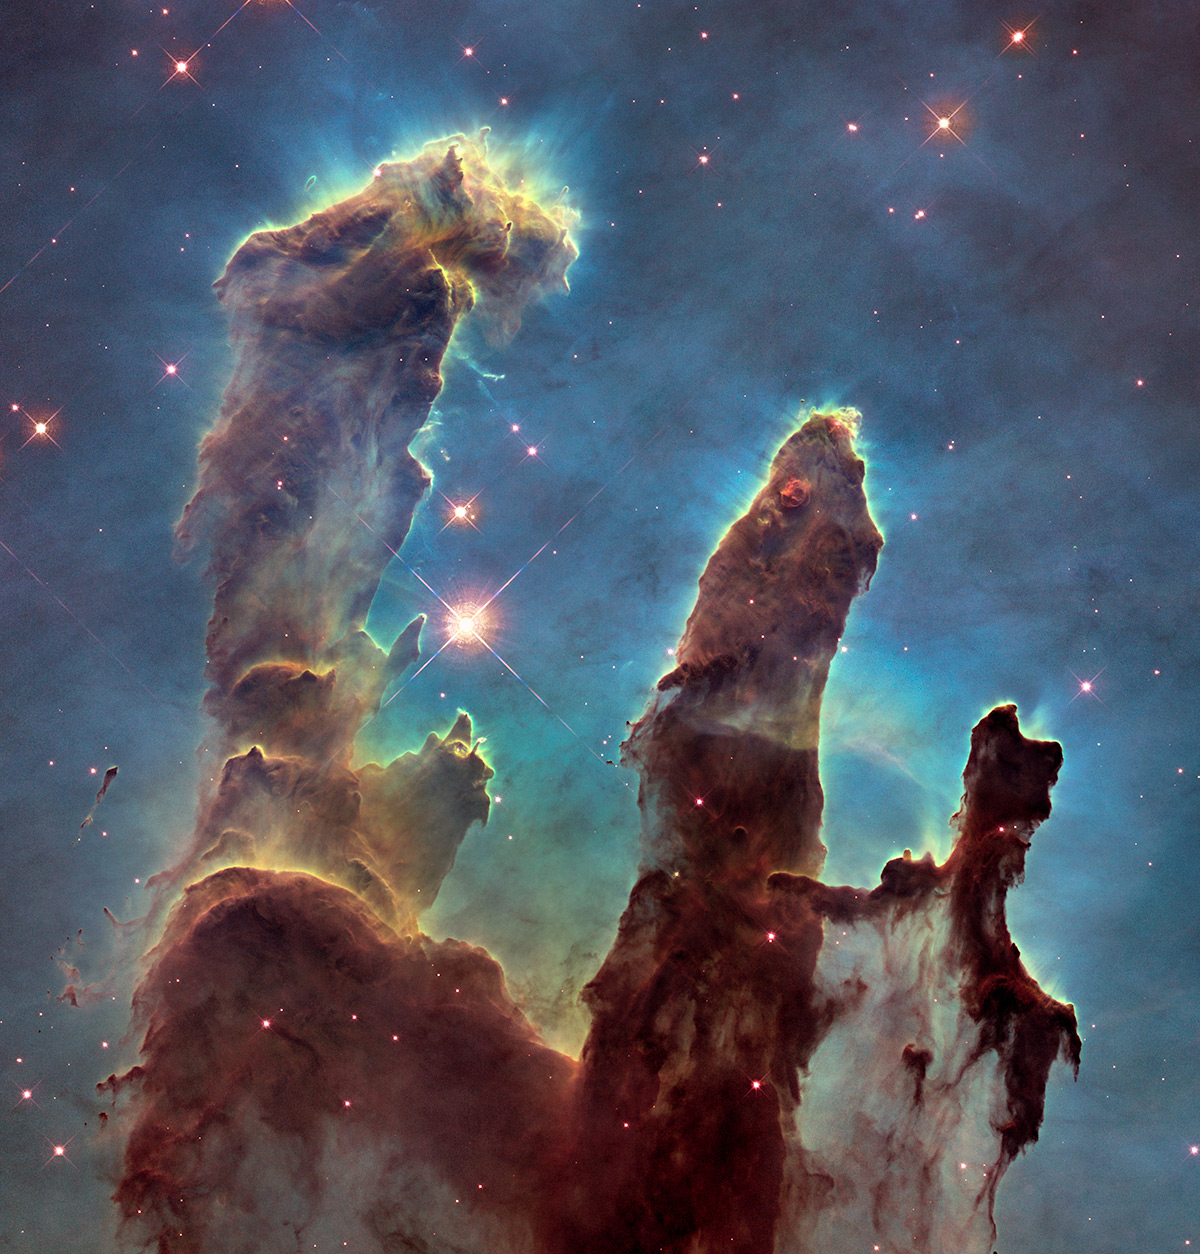 New view of the Pillars of Creation, visible light, detail. NASA, ESA/Hubble and the Hubble Heritage